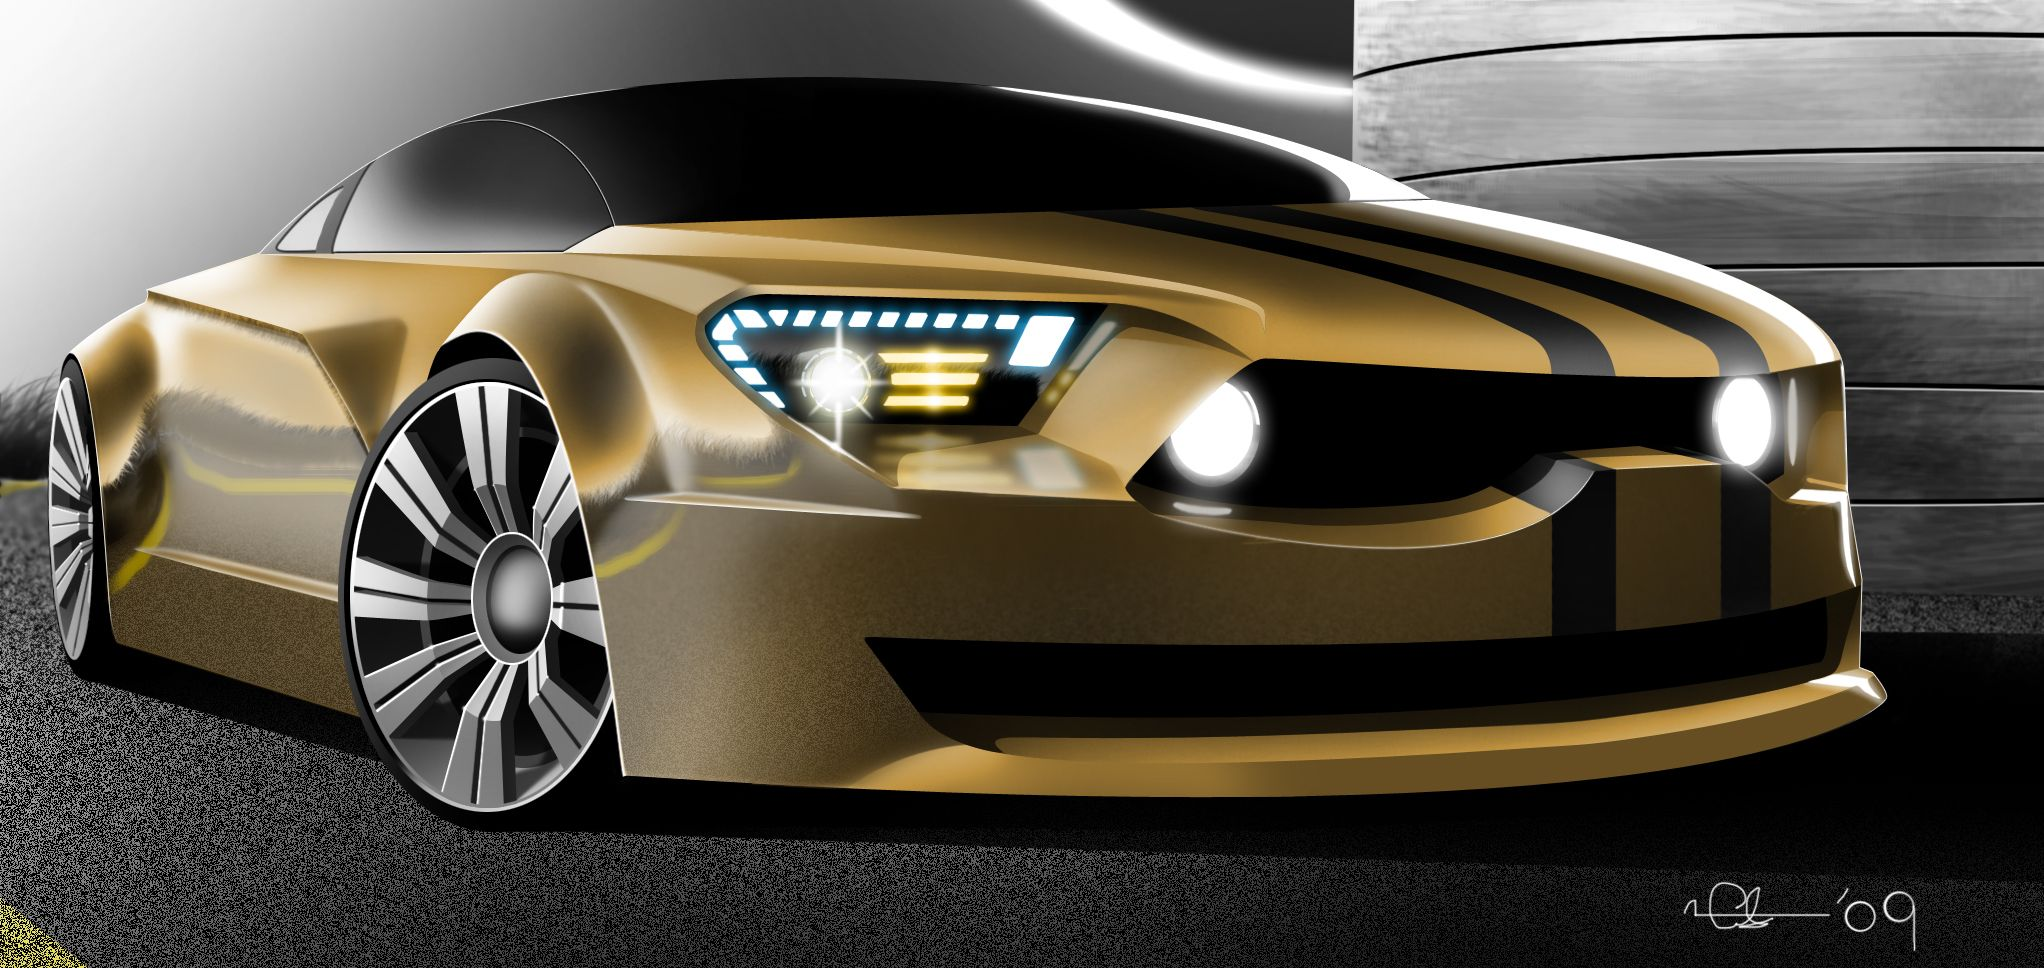 2013 Ford Mustang concept car I DONT LIKE IT AT ALL